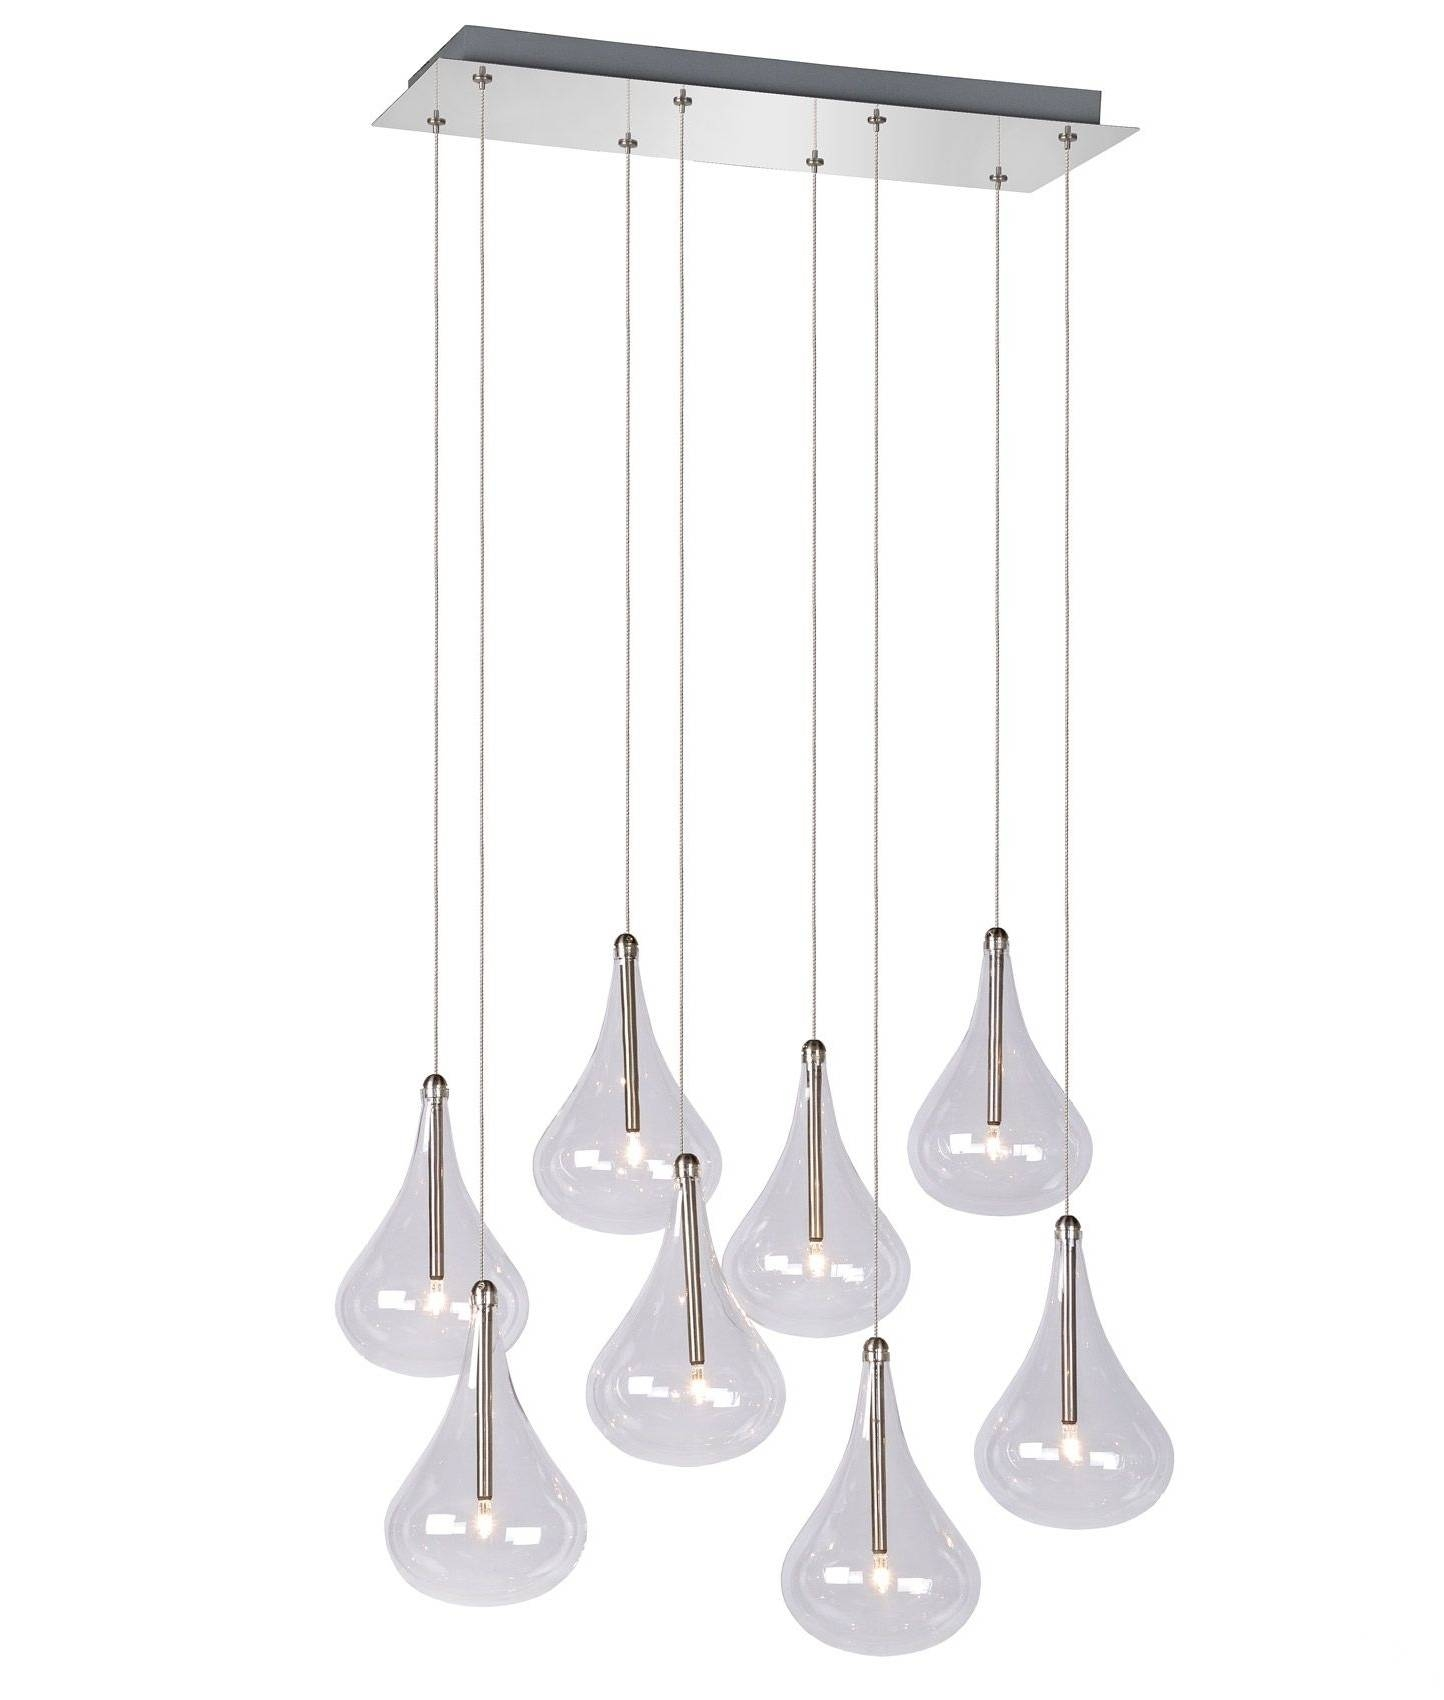 Teardrop Glass 8 Light Square Plate Cluster Pendant Throughout Cluster Glass Pendant Light Fixtures (View 14 of 15)